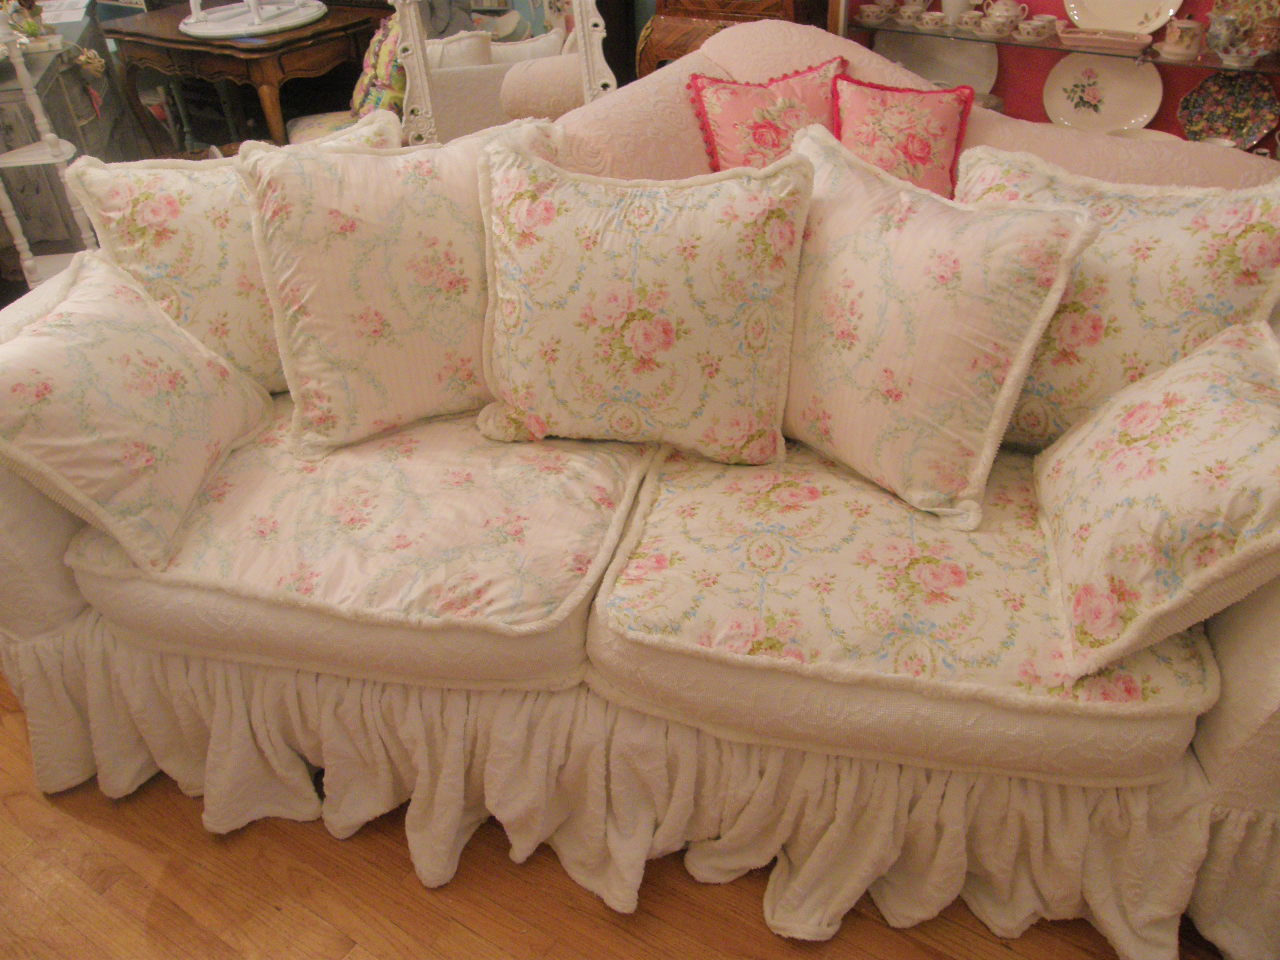 Vintage Chic Furniture Schenectady NY: Shabby Chic Slipcovered Sofa ...